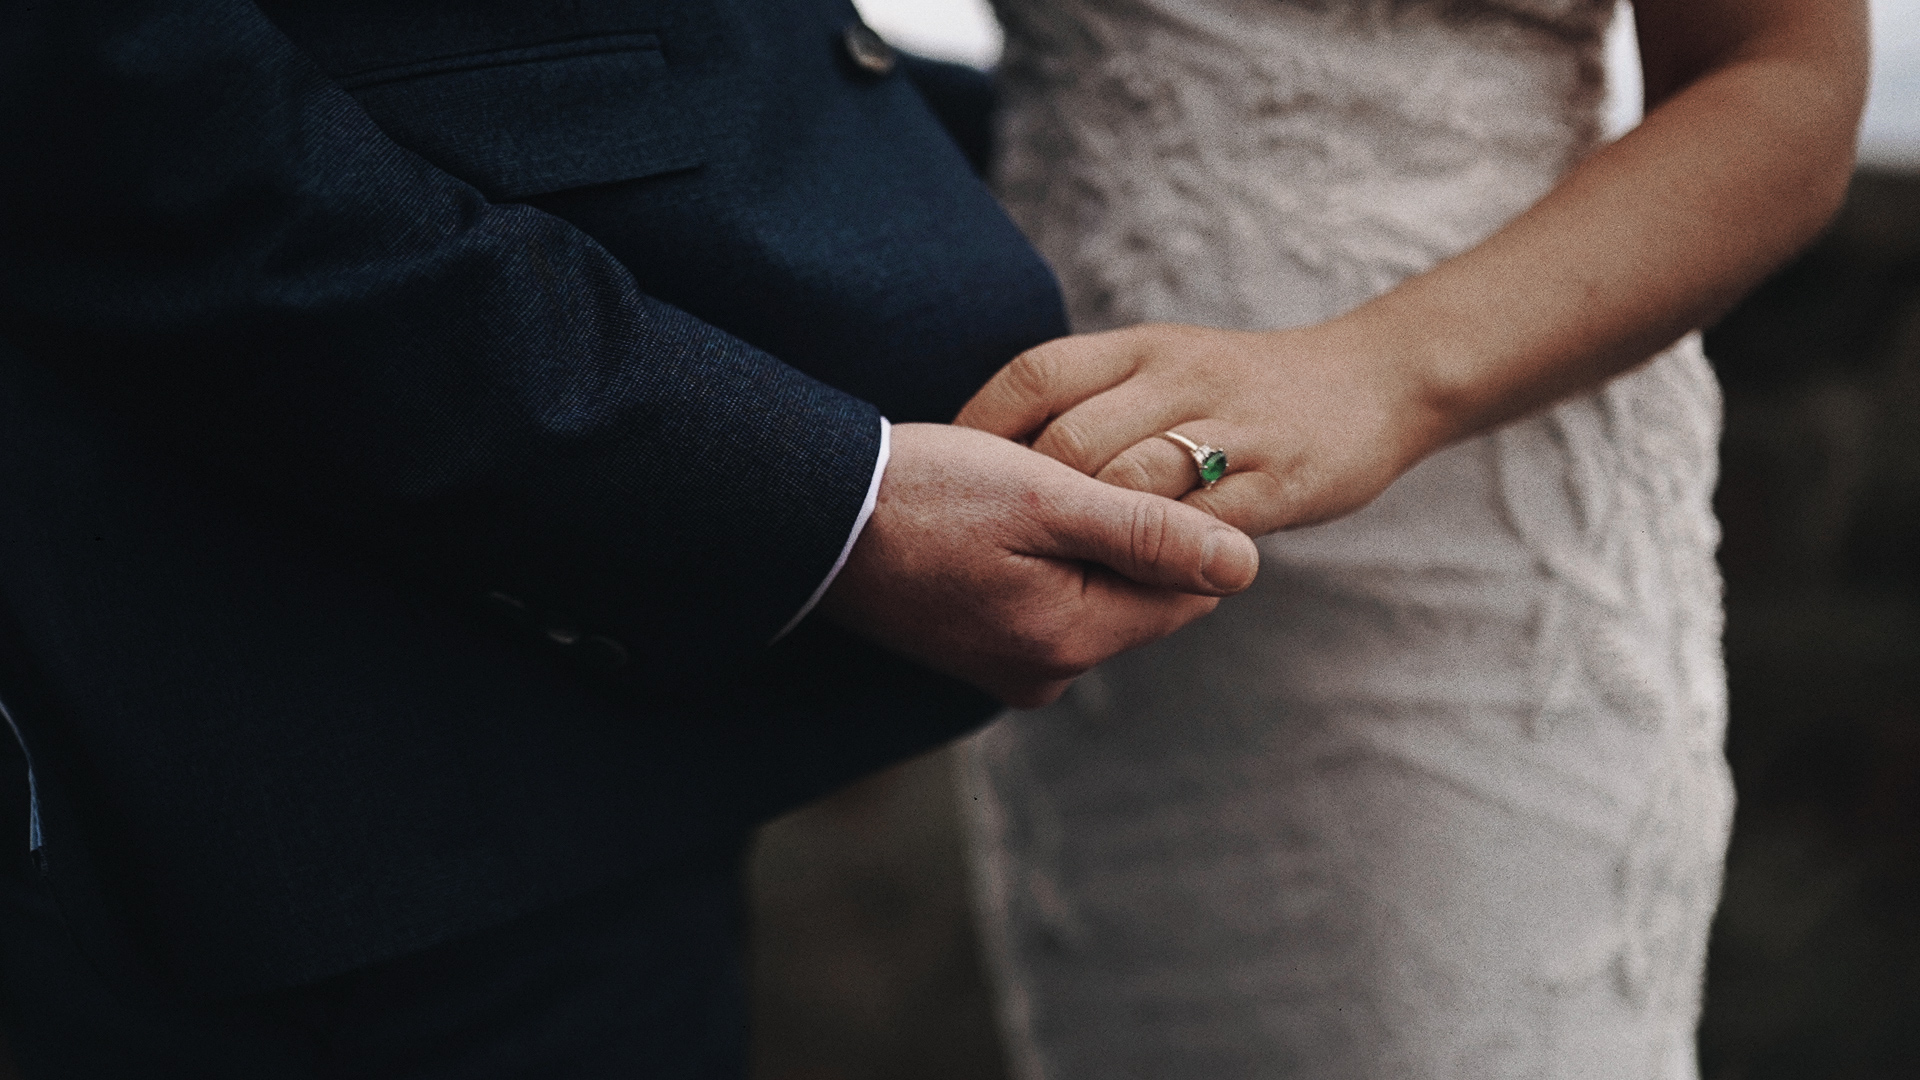 Newly couple holding hands with wedding rings.